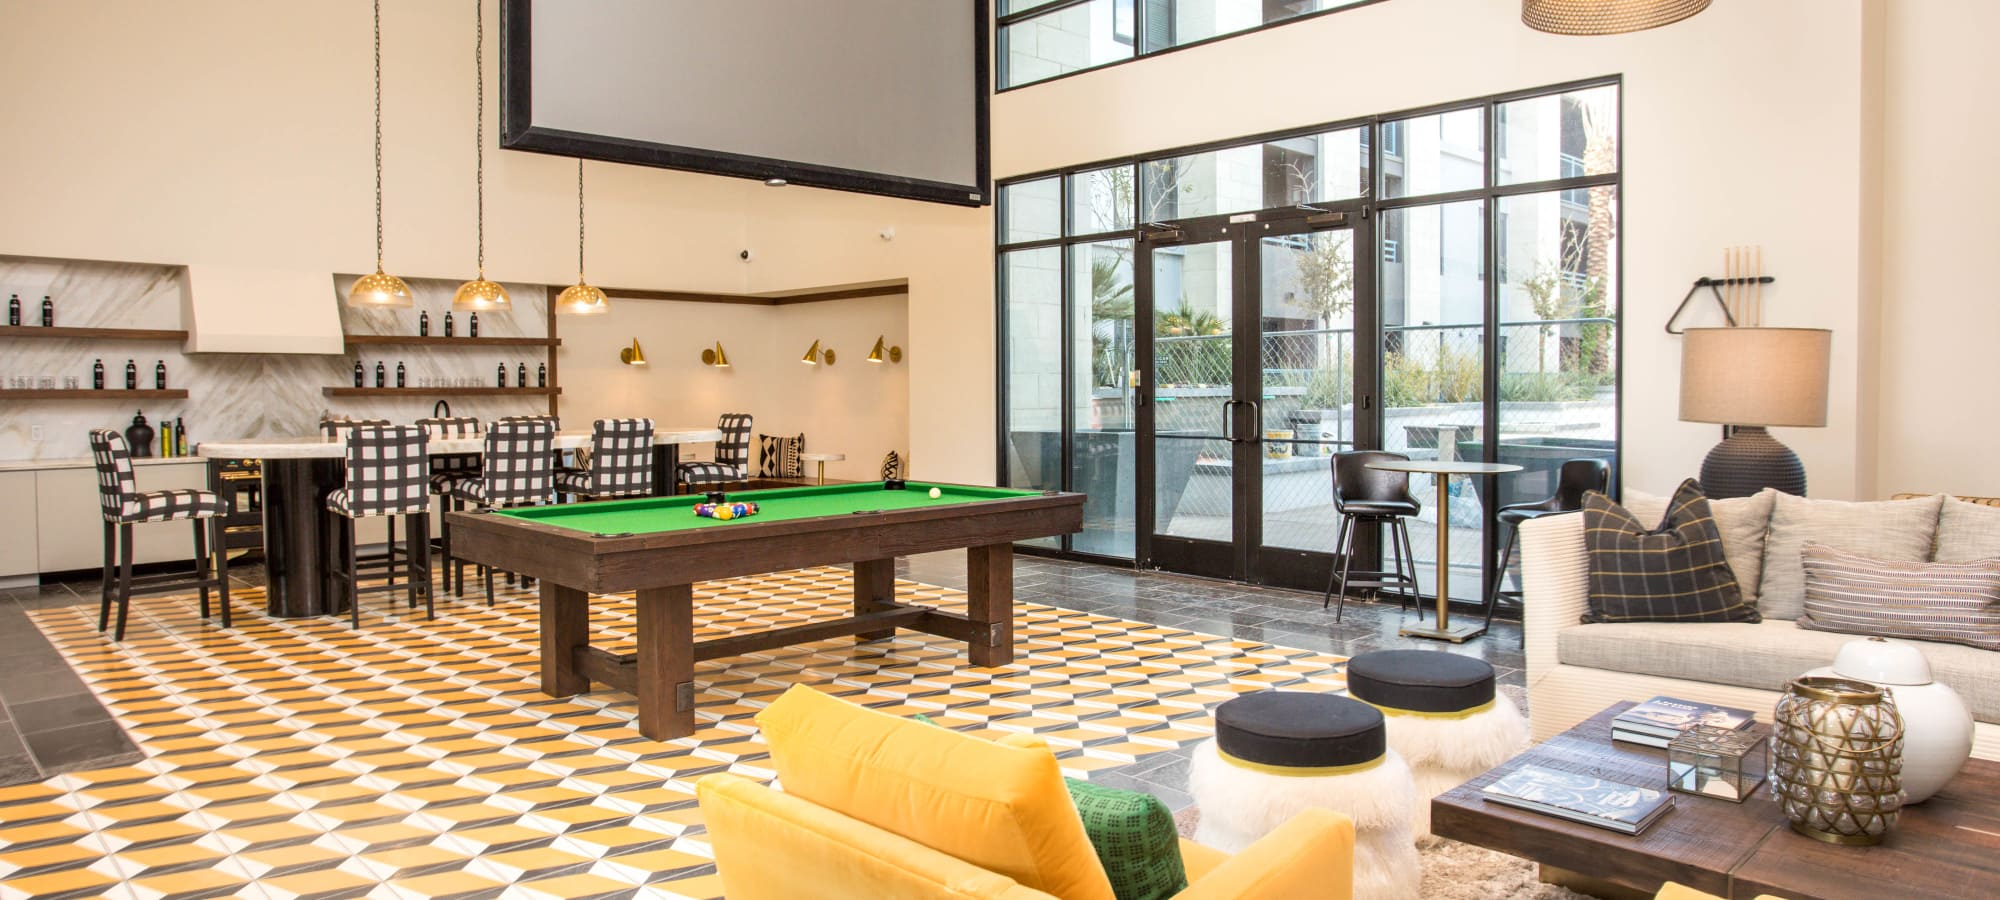 Large community clubhouse with a pool table and giant flat-screen TV at Lakeside Drive Apartments in Tempe, Arizona